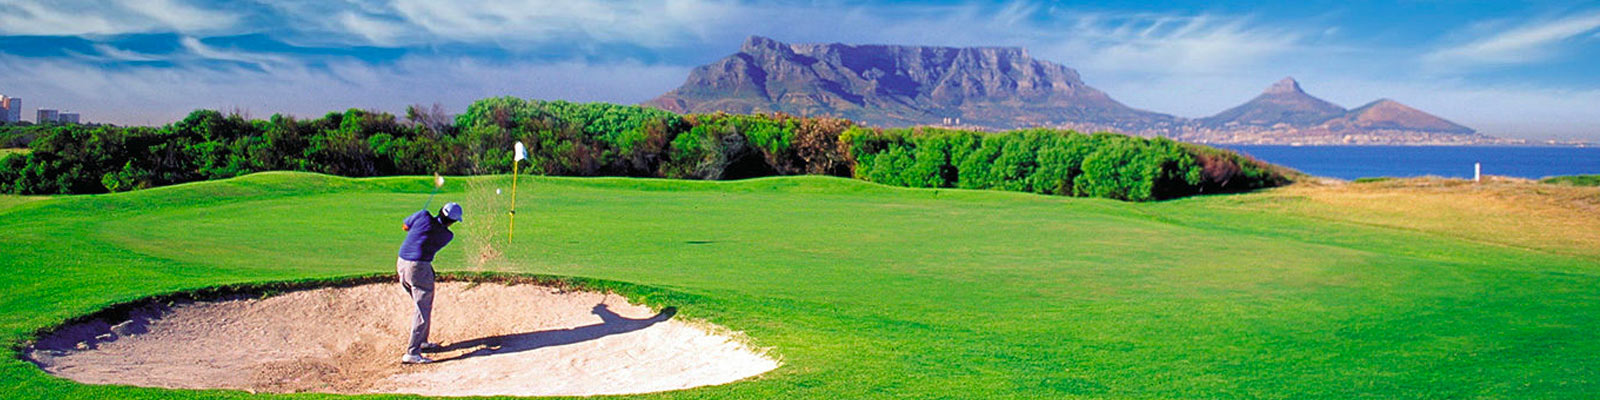 Cape Puzzle Private Golfing & Adventure Tours of the Western Cape